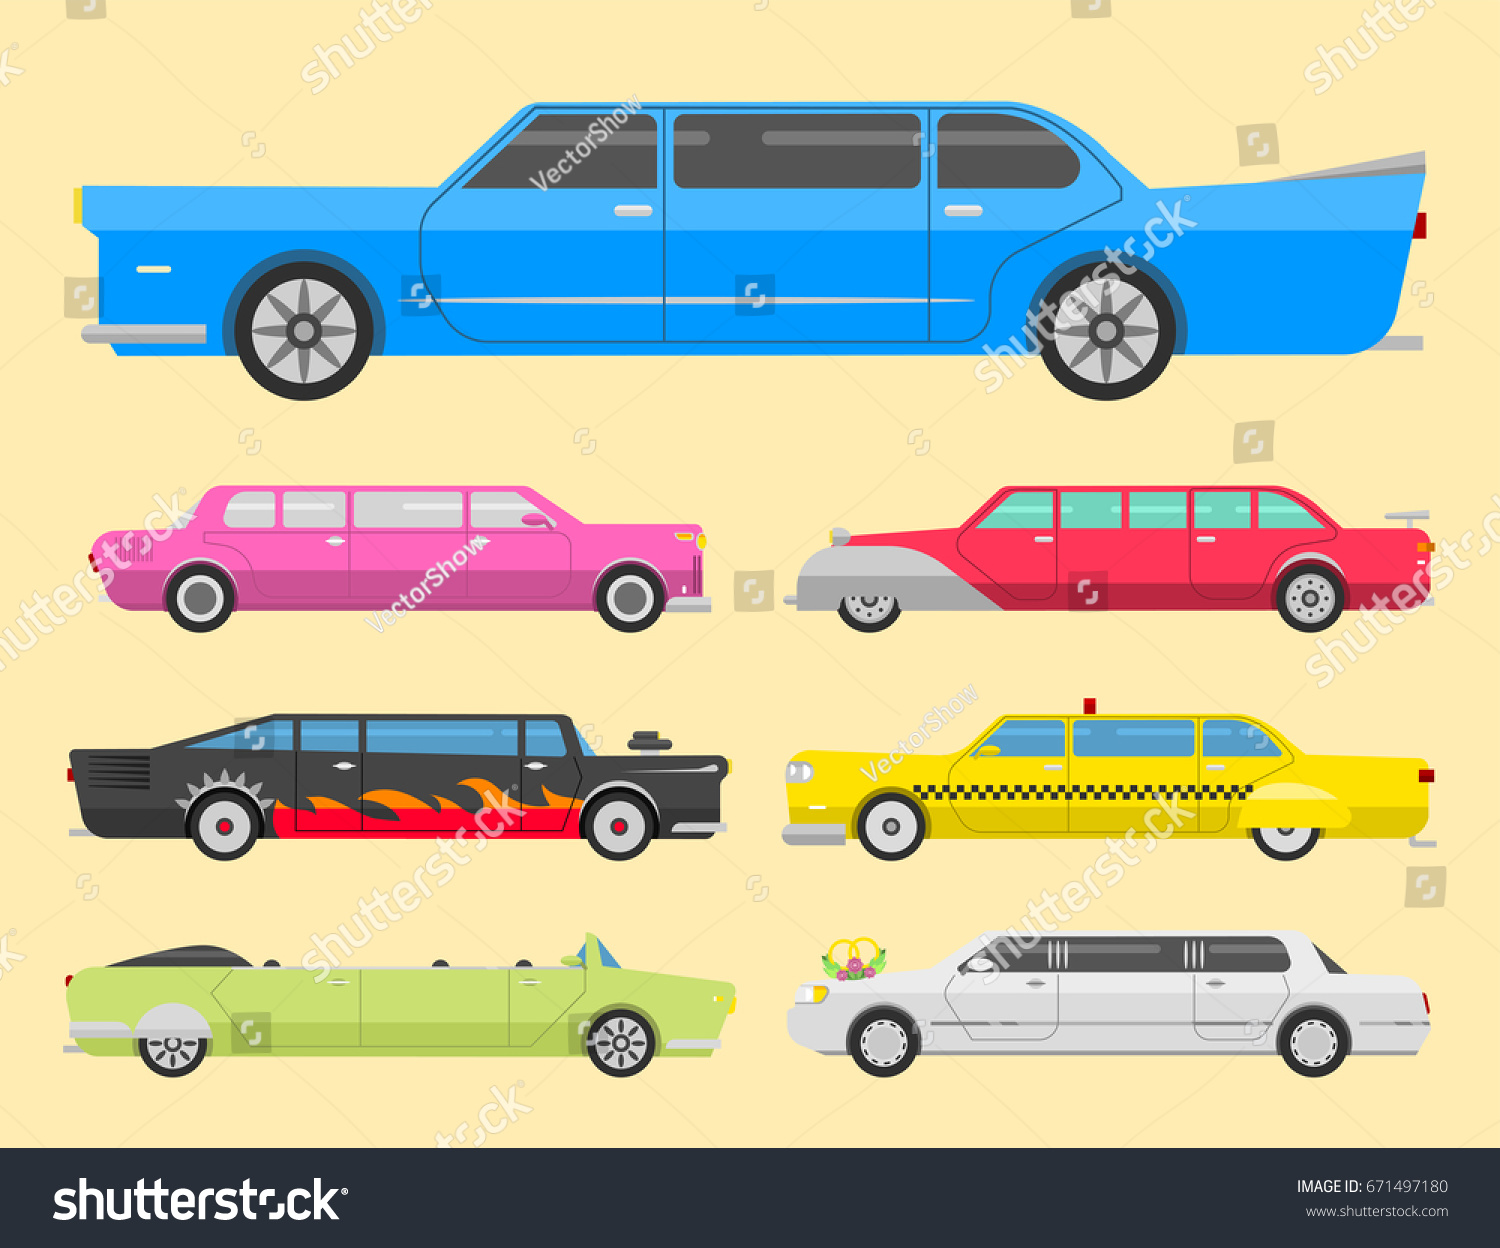 Detailed Vector Luxury Limousine Long Car Stock Vector Royalty Free - Show car transport